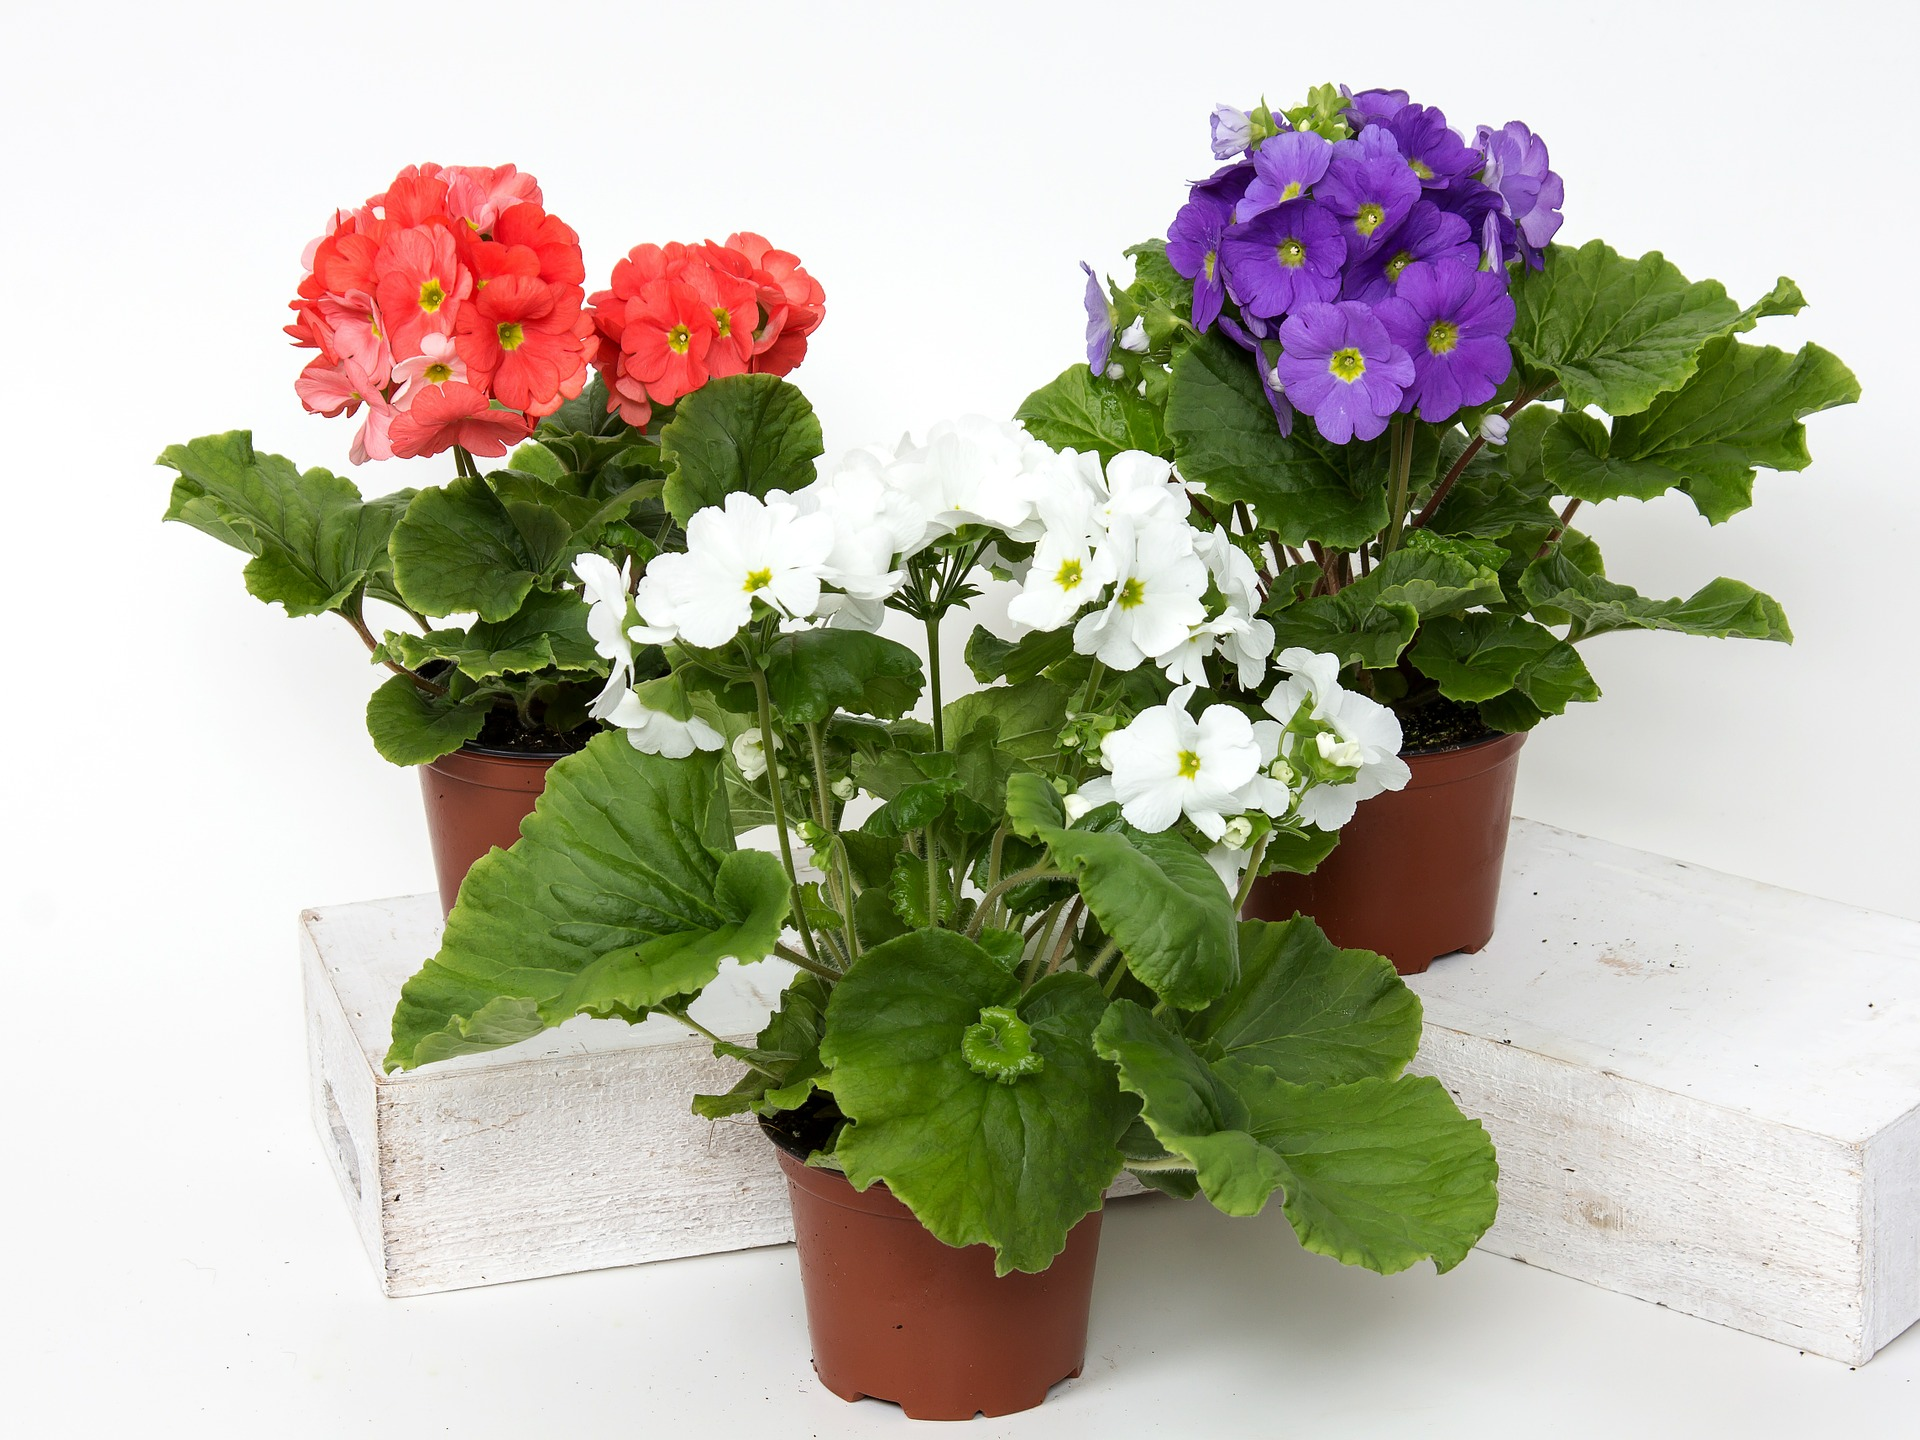 Plants Growing Guide How to Grow Flowers Roses Bulbs Shrubs Perennials ...